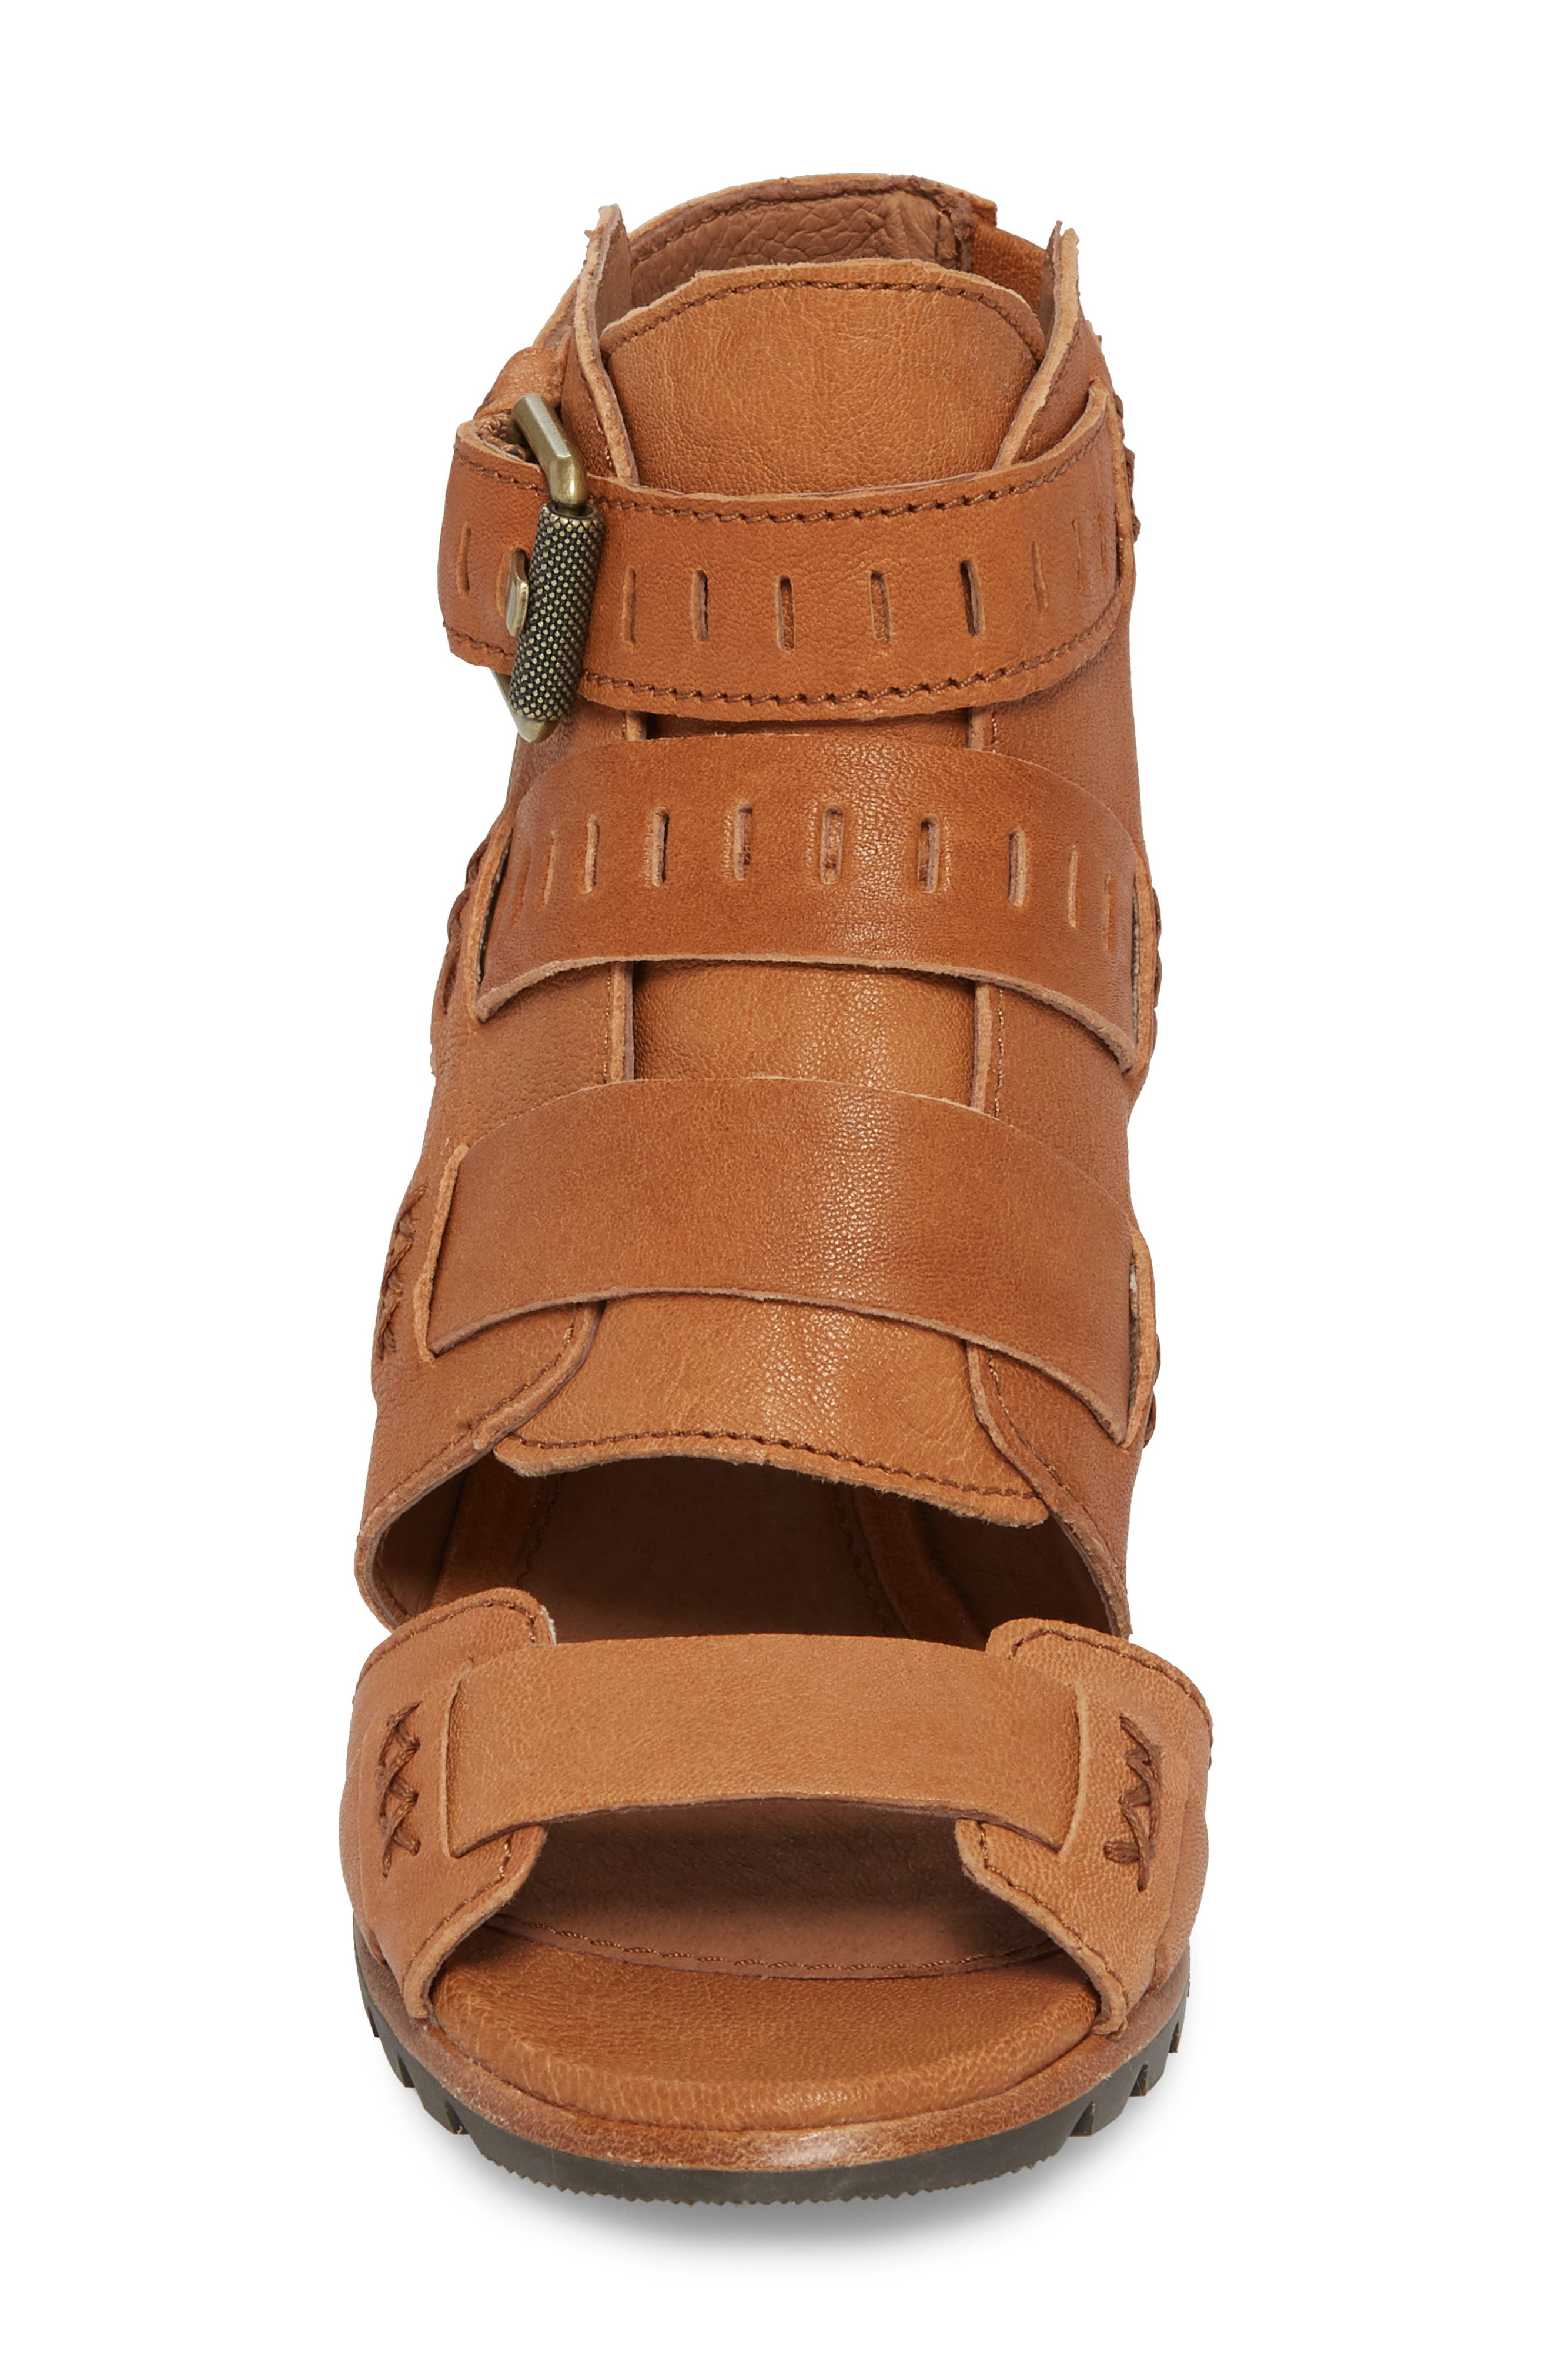 Nadia Buckle Bootie,                             Alternate thumbnail 4, color,                             Camel Brown